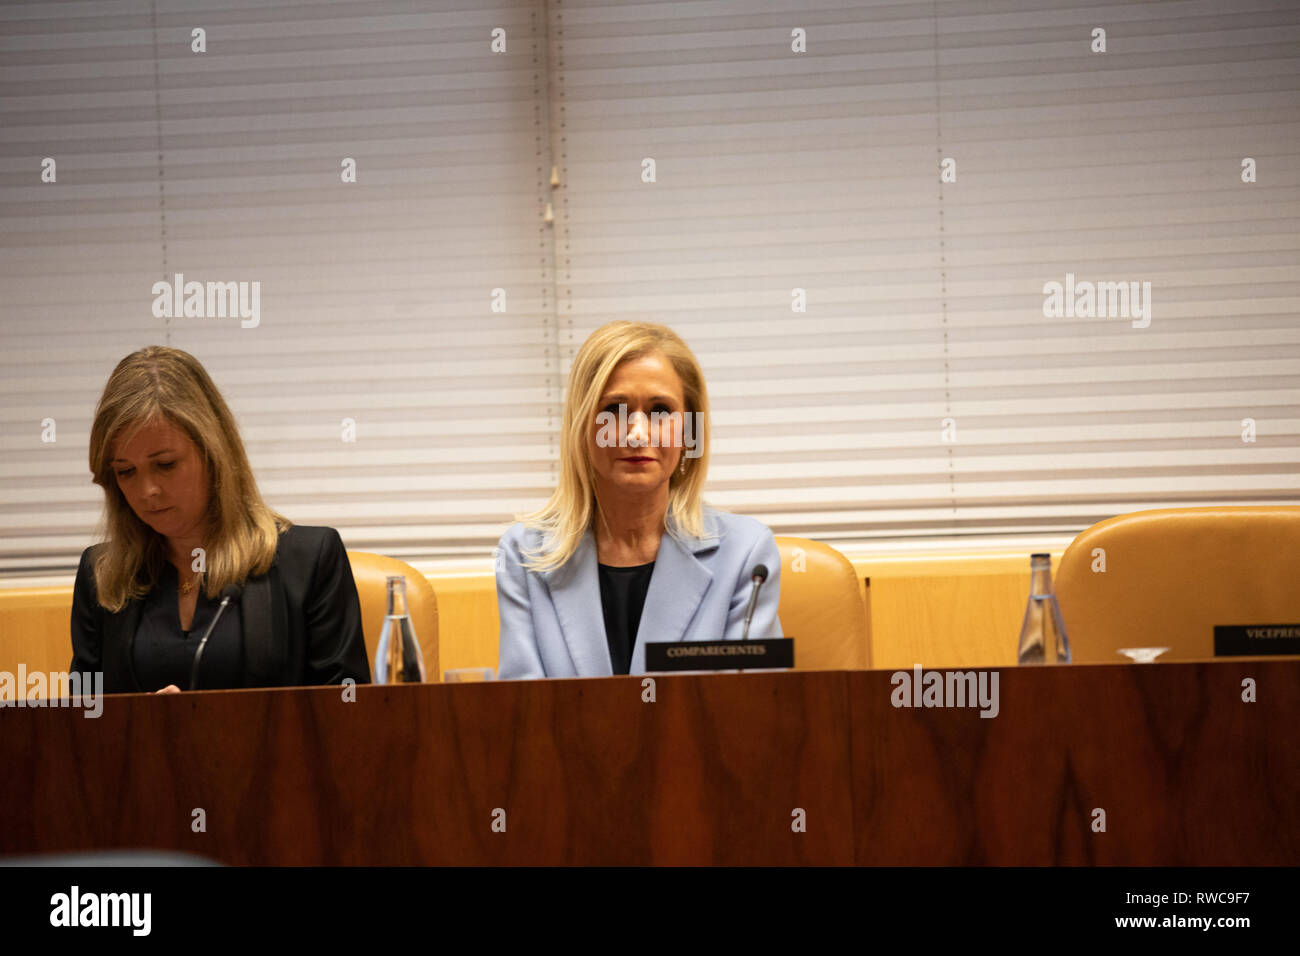 Madrid, Spain. 6th Mar, 2019. The former president of the Community of Madrid Cristina Cifuentes (R) with her lawyer(L) are seen attending the research commission of universities of the Assembly of Madrid to appear in relation to the case Master, which is investigated for alleged crime of falsification of documents. Credit: Jesus Hellin/SOPA Images/ZUMA Wire/Alamy Live News - Stock Image